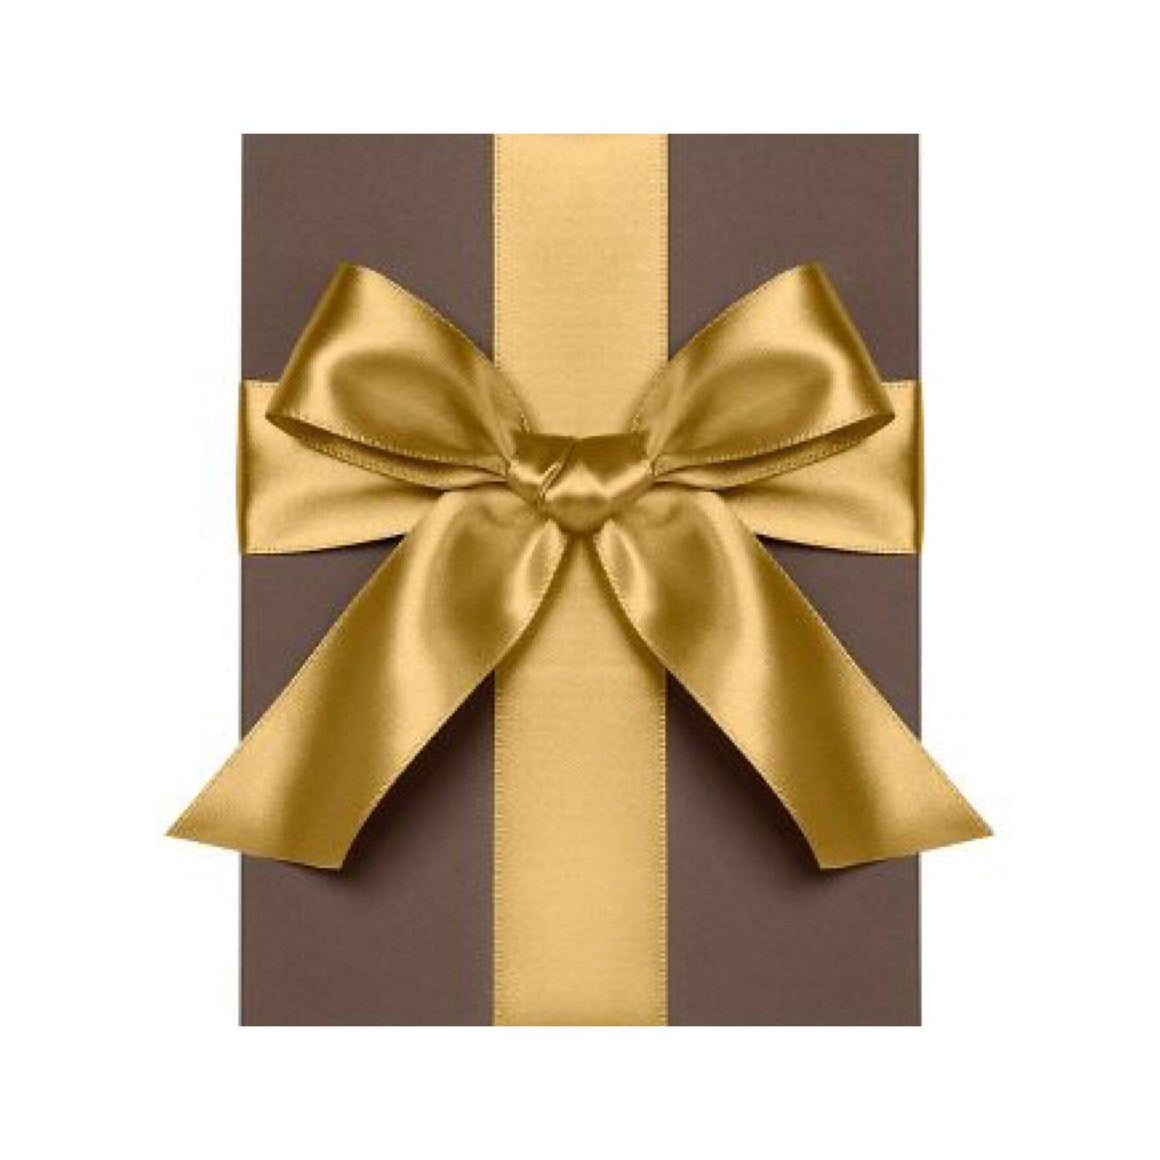 "GIFT GIVING - RIBBON 1 1/2"" VINTAGE GOLD, RIBBON, WASTE NOT PAPER - Bon + Co. Party Studio"